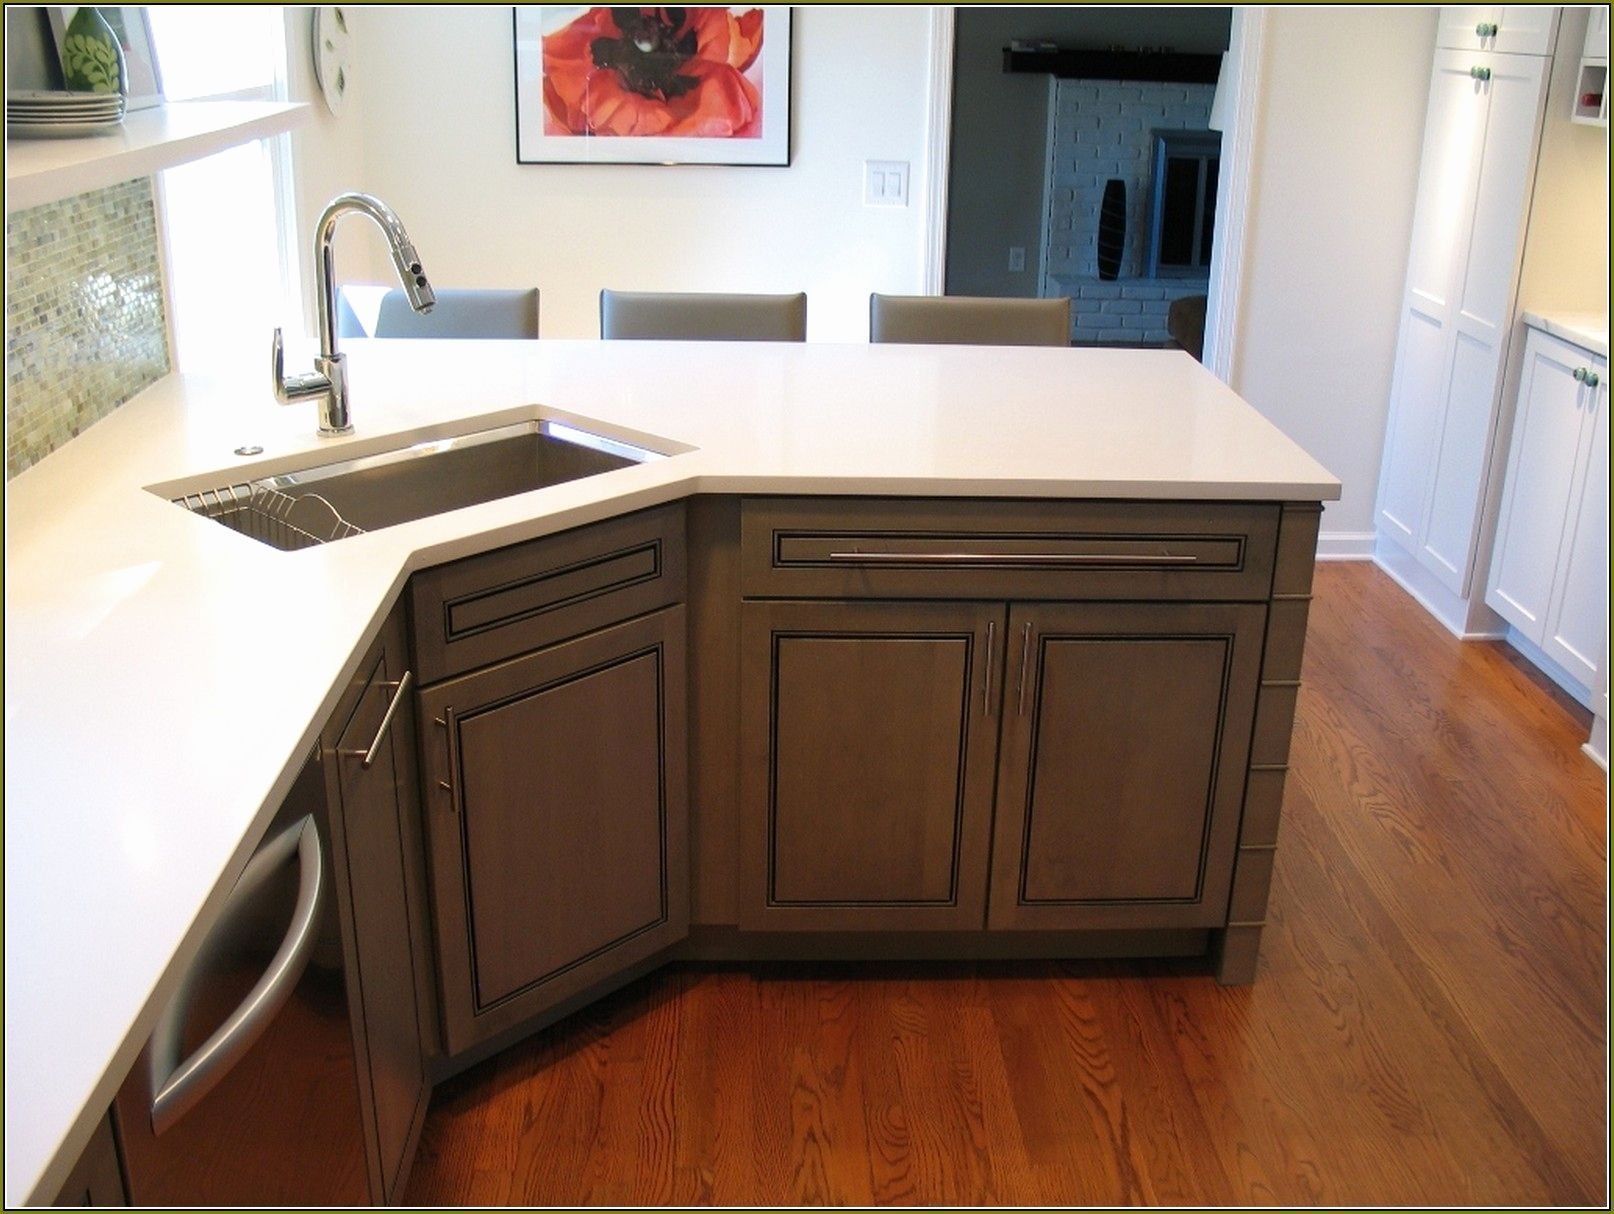 Corner Sink Base Cabinet Plans Home Decor Small Kitchen Sink Kitchen Sink Design Kitchen Design